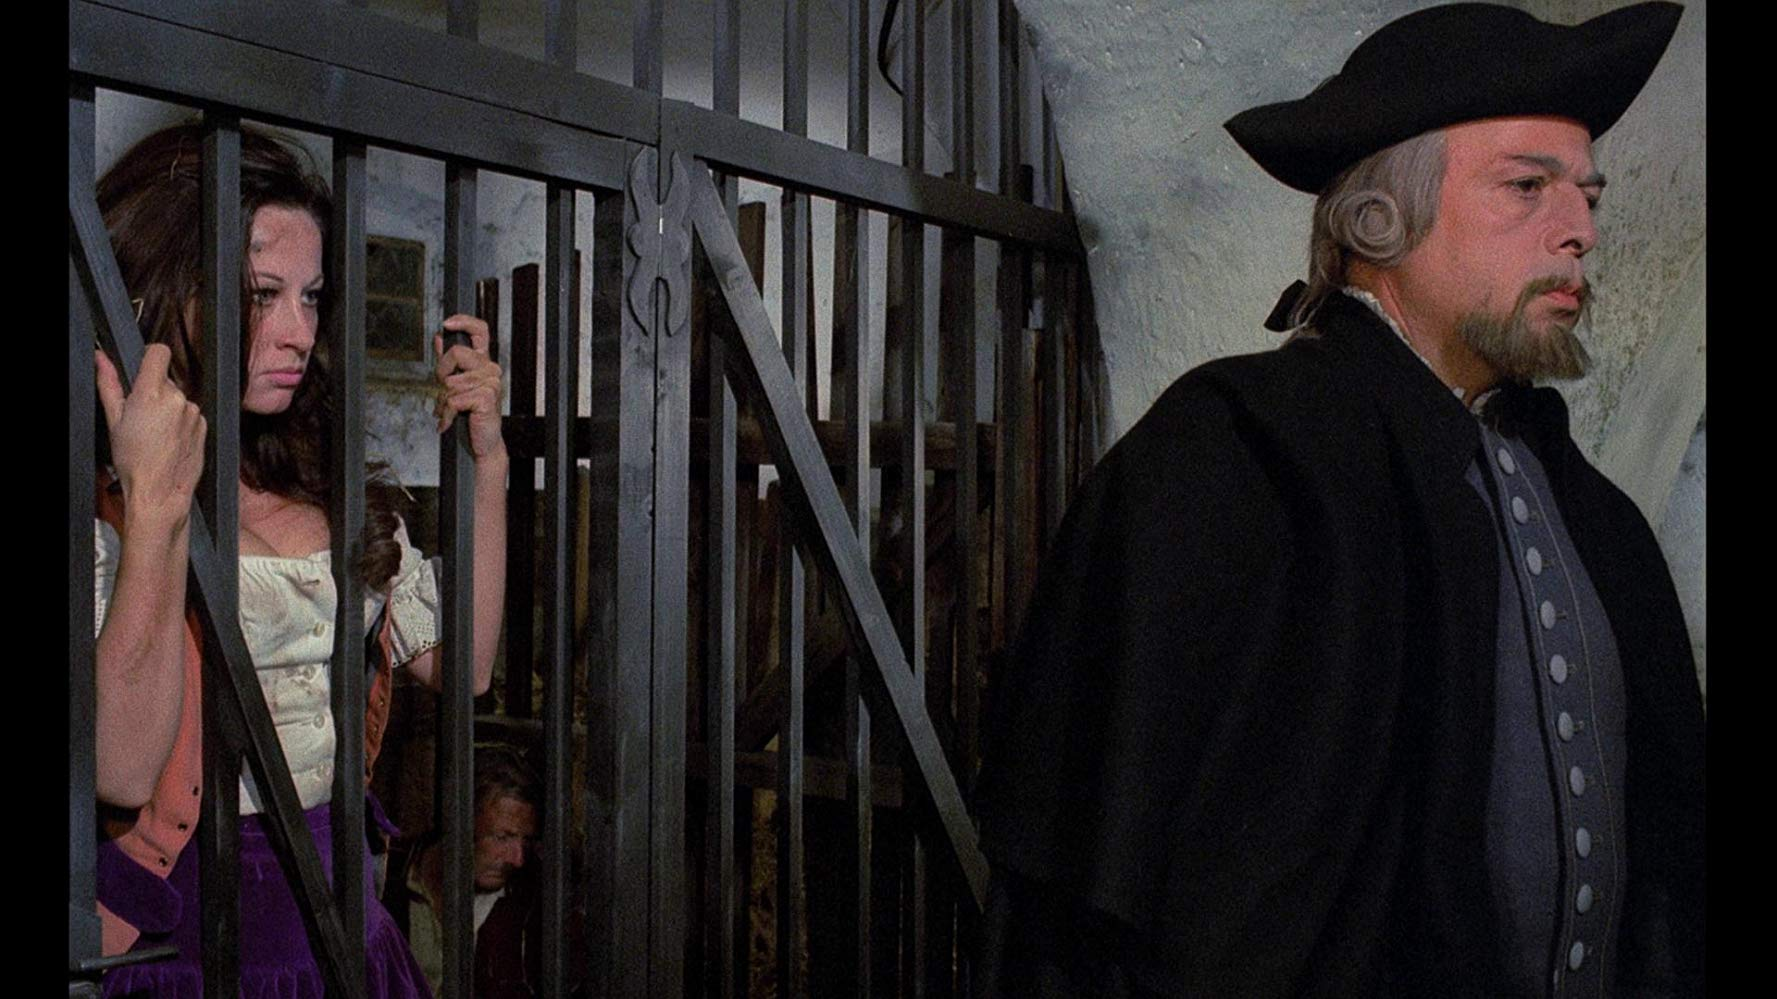 A young woman (Olivera Katarina) behind bars looking at an older man (Herbert Lom) with his back turned to her.